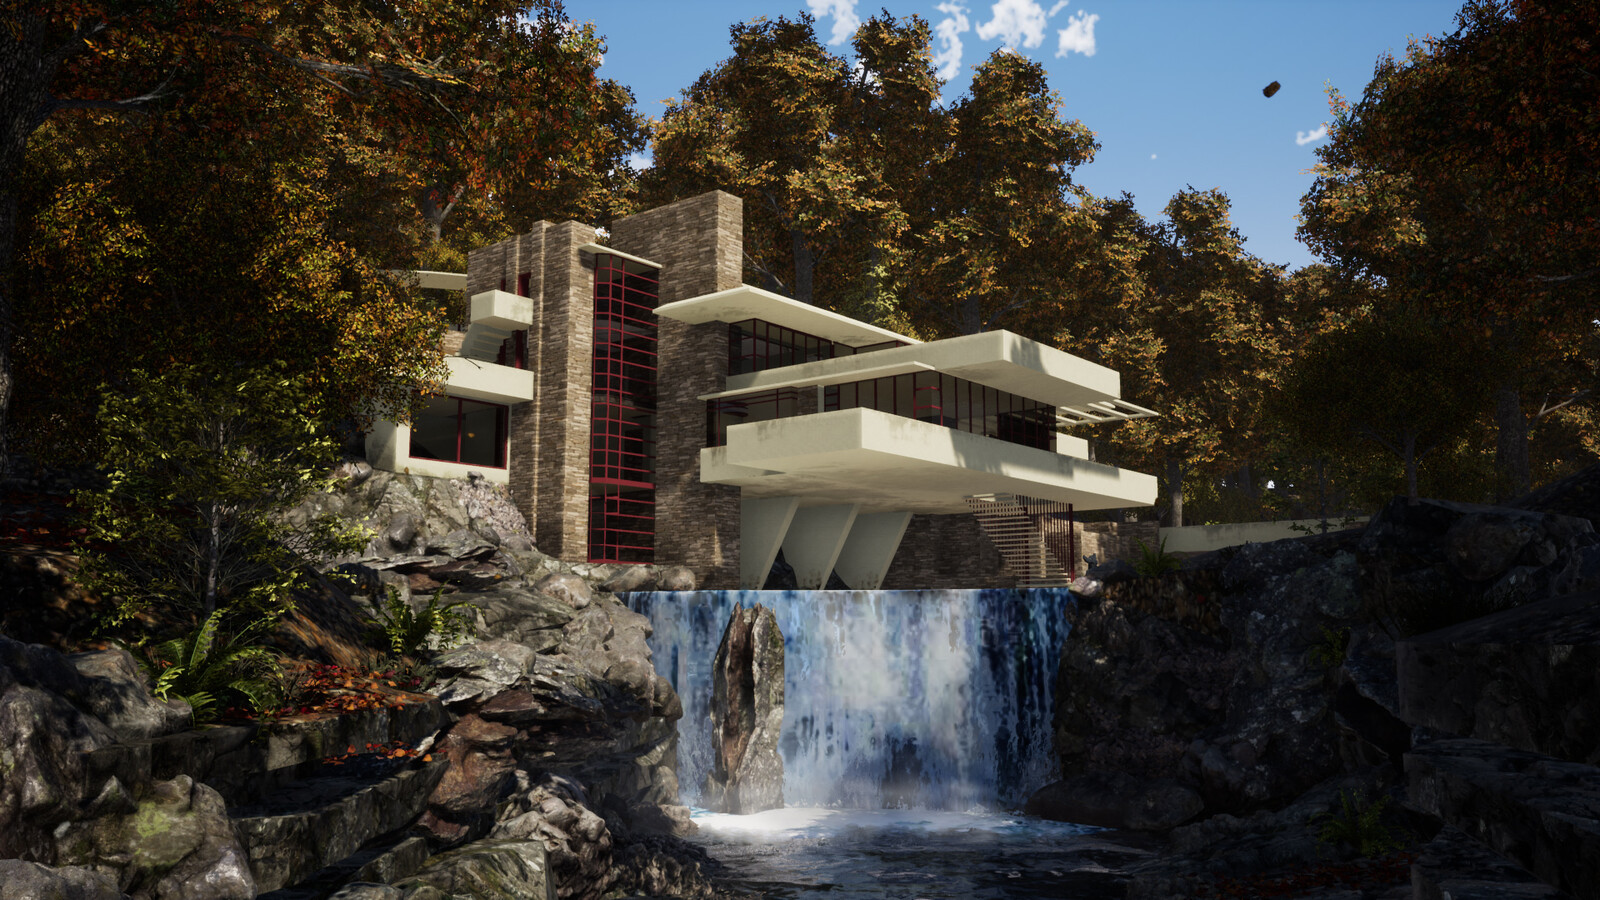 3D rendering of Falling Water House. Edited in Photoshop.